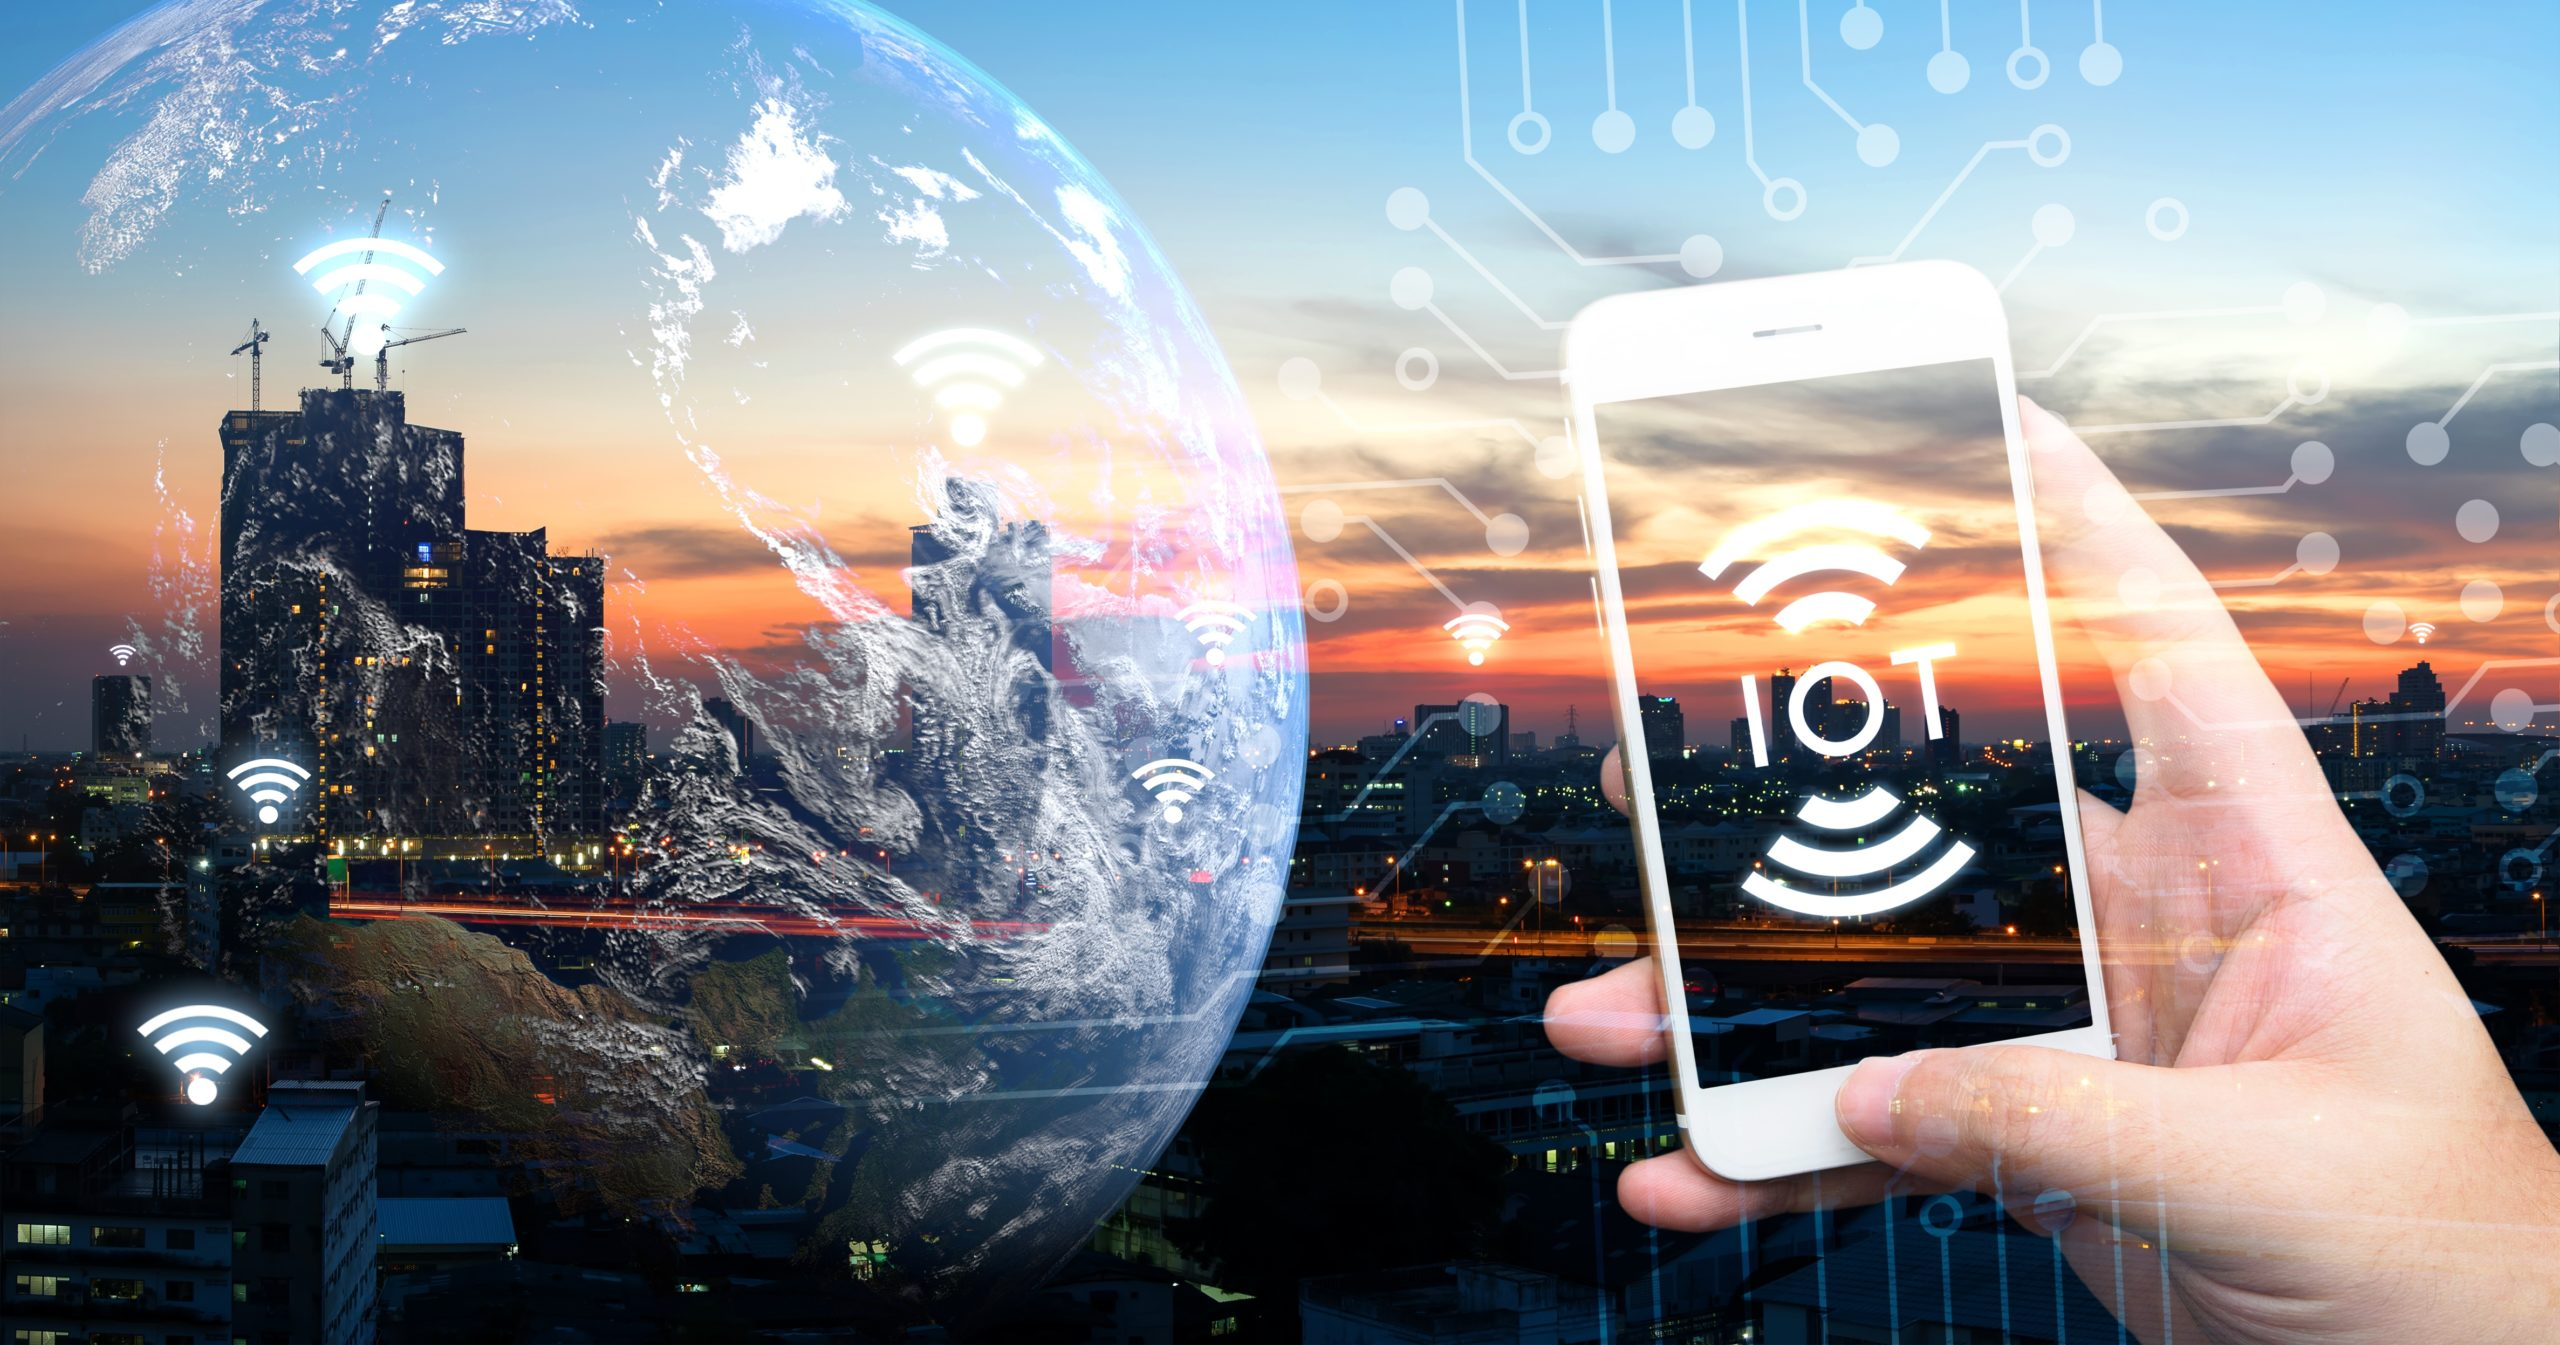 Why companies need to lock down IoT systems